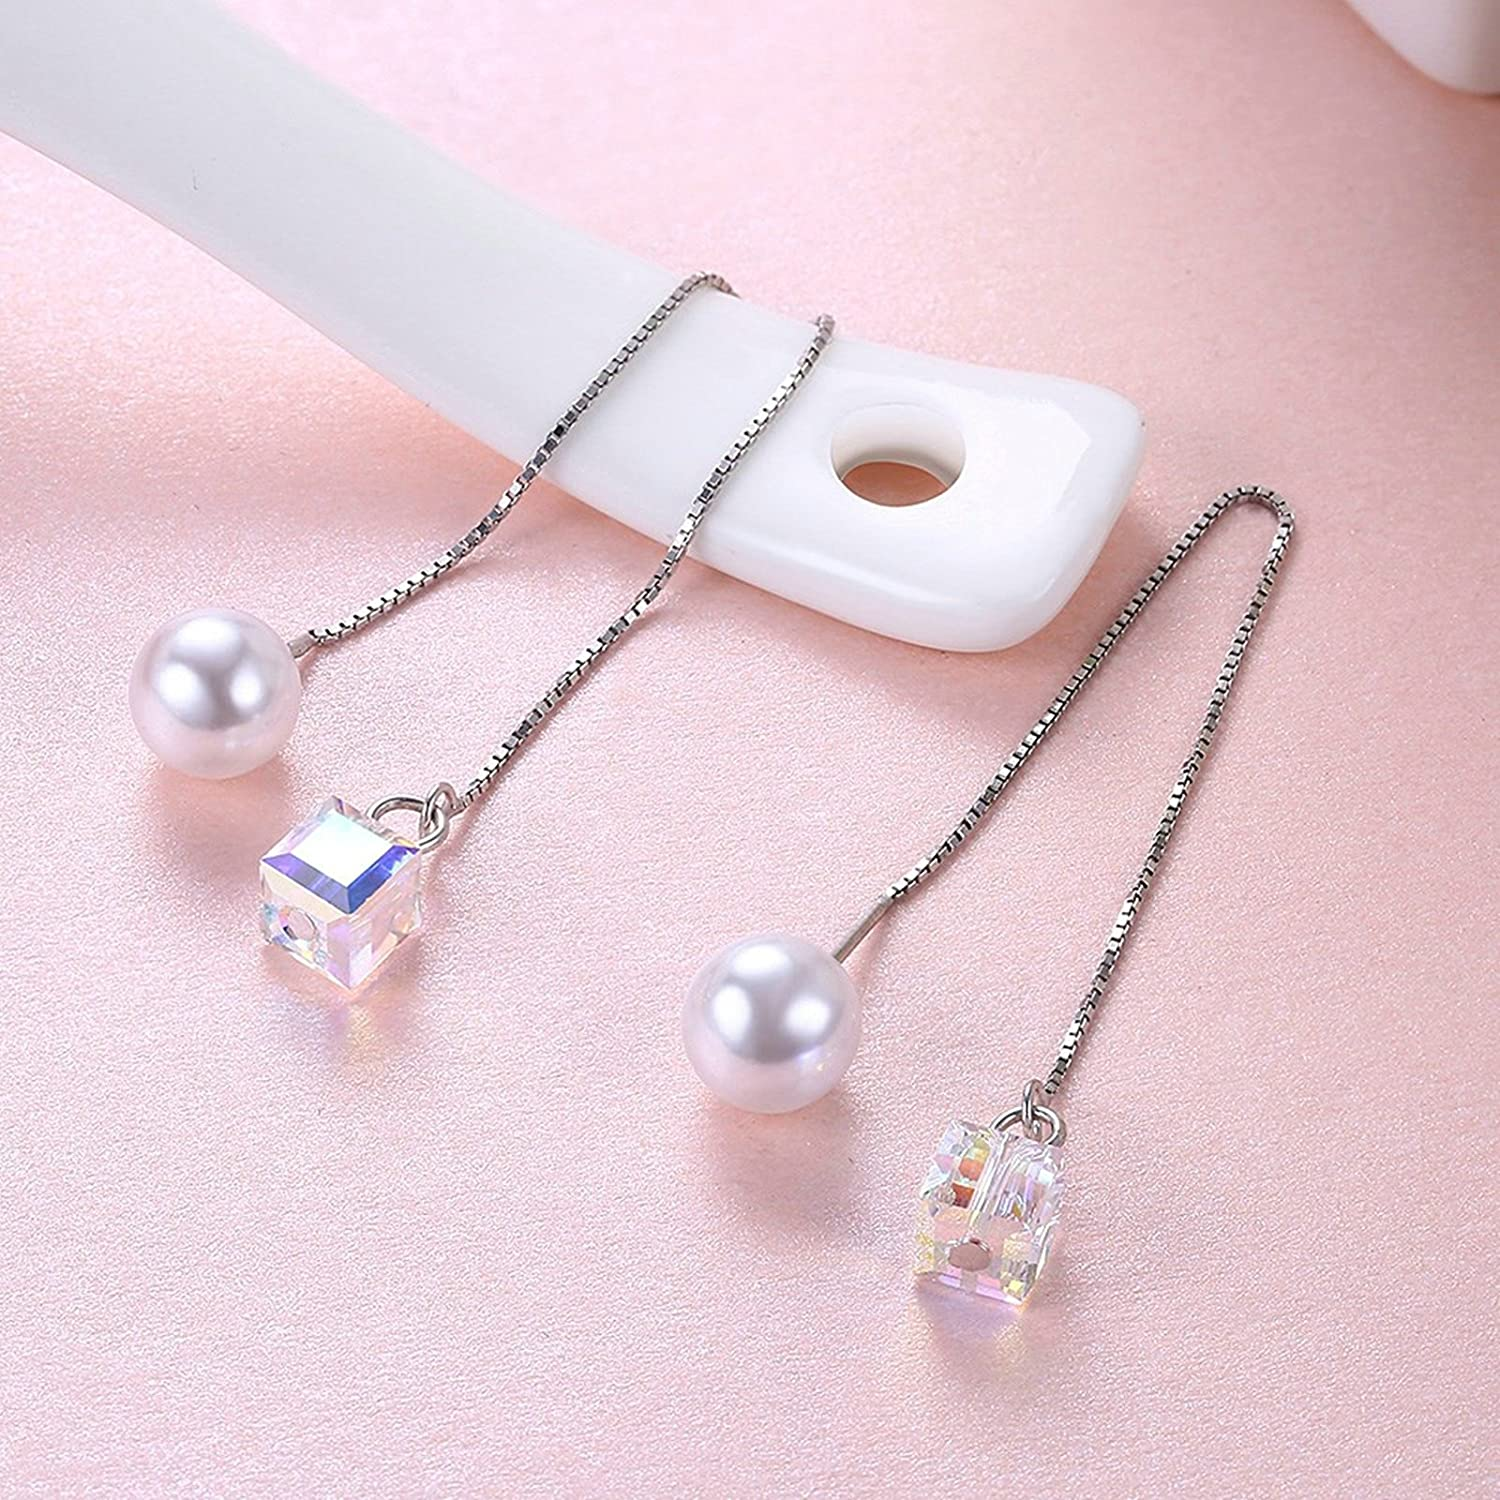 Aokarry Womens S925 Silver Earrings for Girls Simulated Pearl Ball Clear CZ Dangle